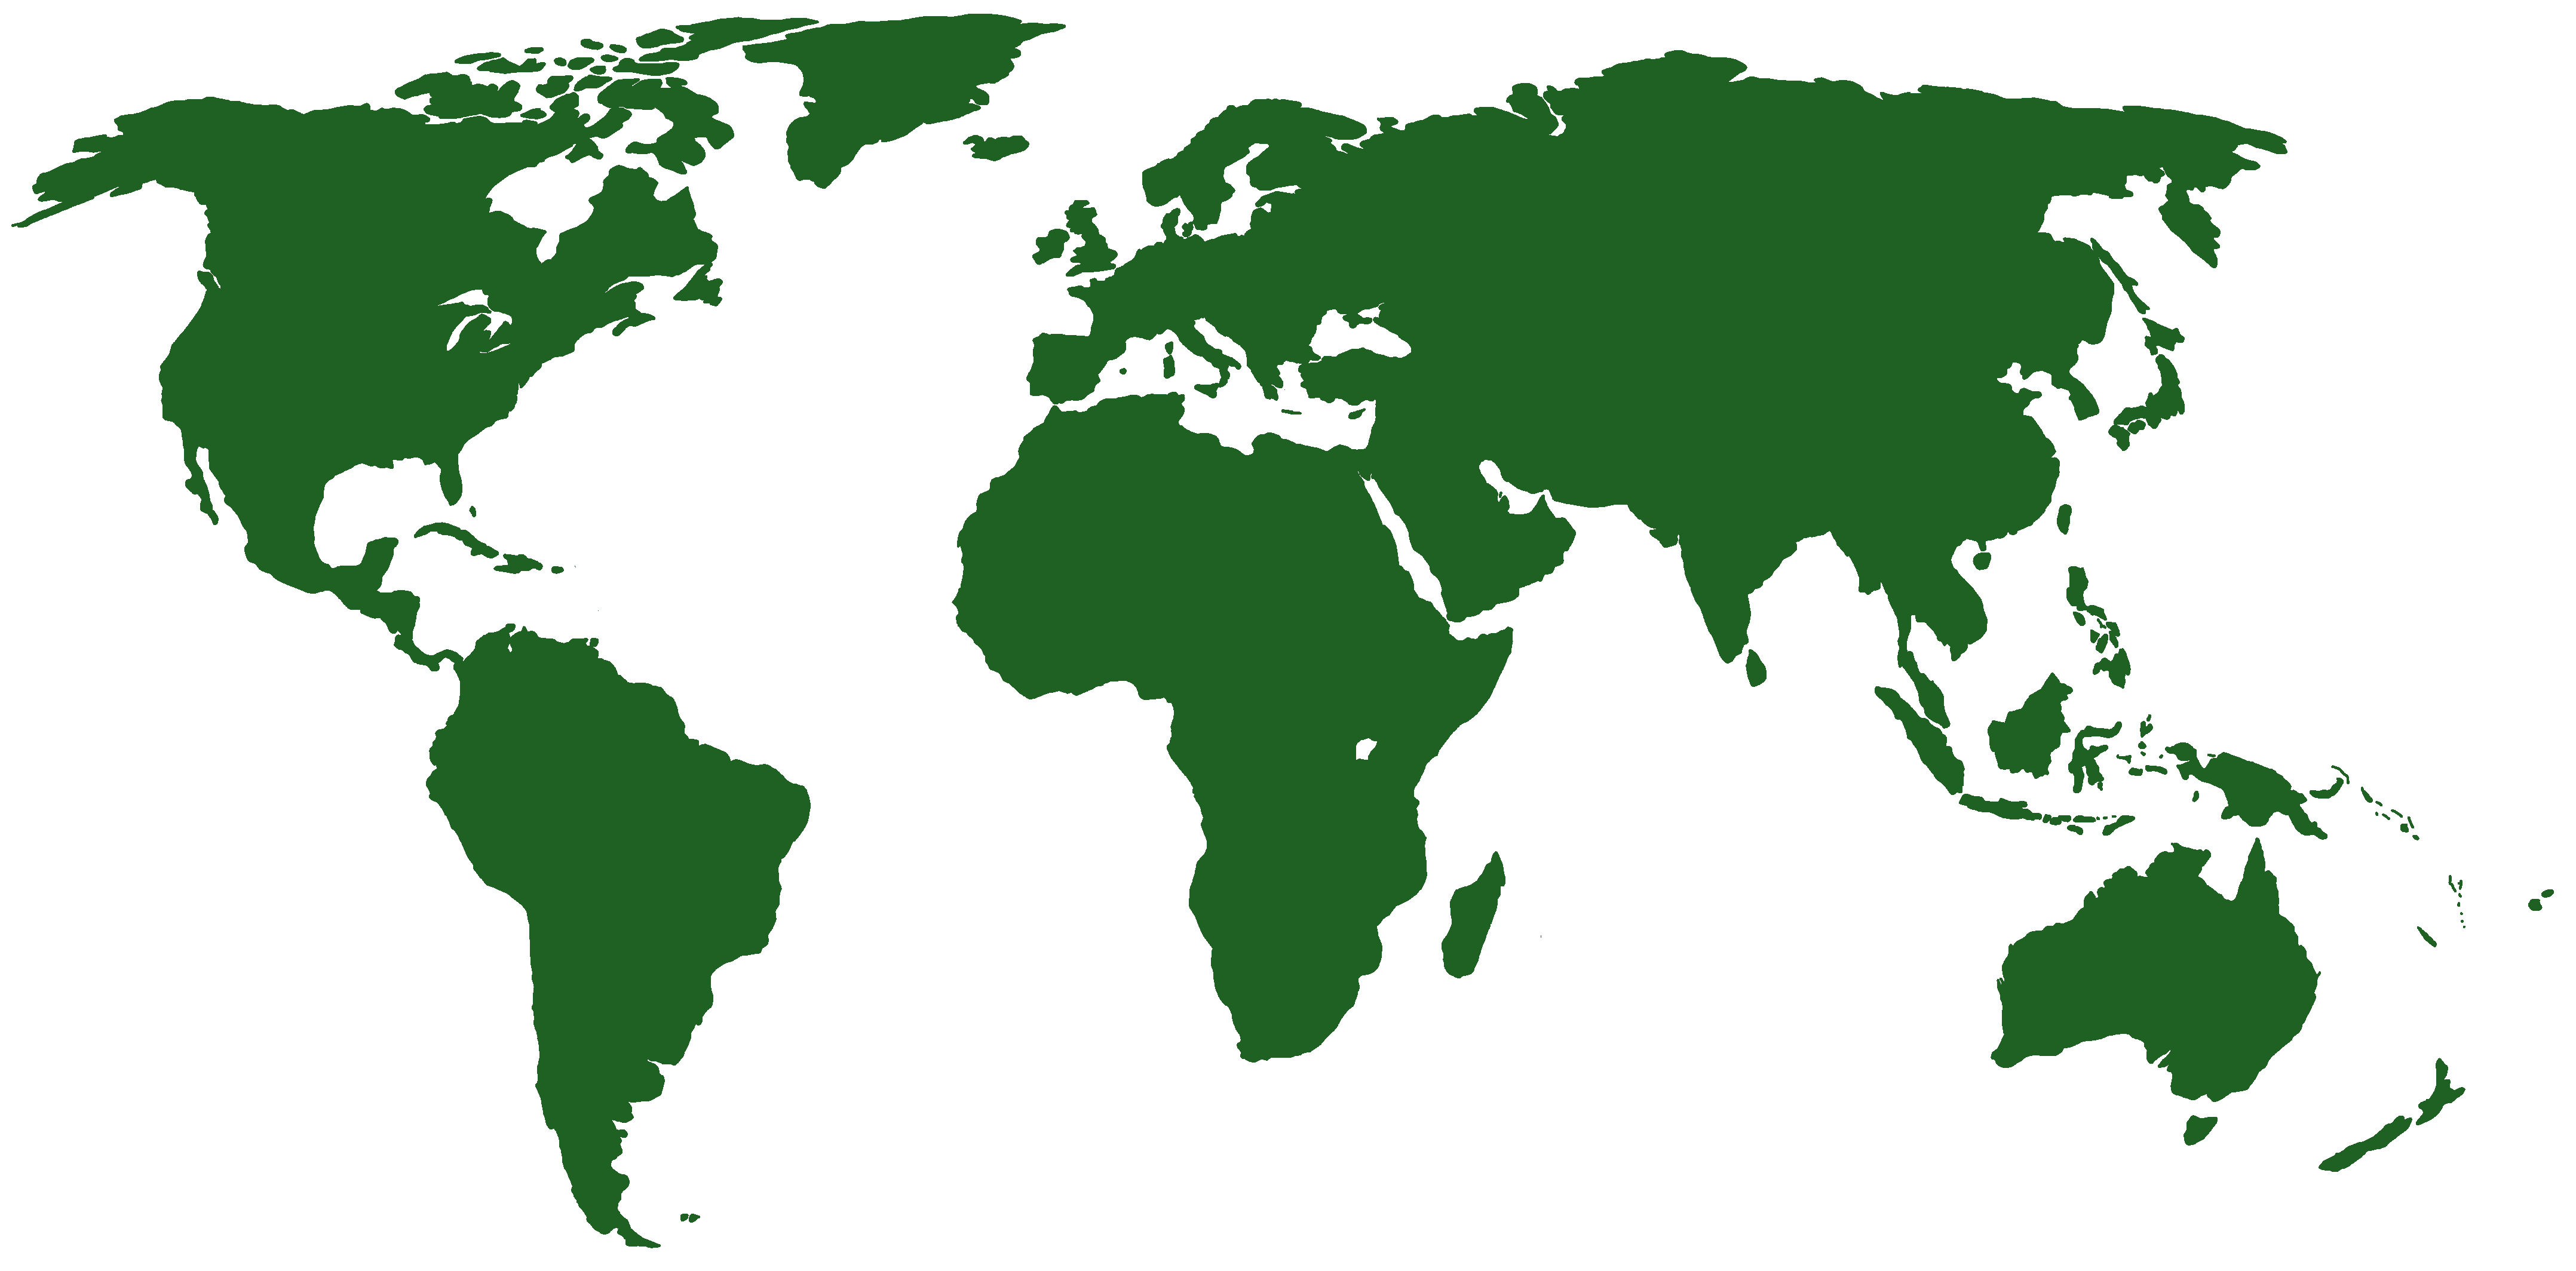 Zimbabwe Is Not In Good Company When It Comes To Banning ... on spain on world map, mali on world map, myanmar on world map, angola on world map, gabon world map, argentina on world map, siberia on world map, ghana world map, jericho on world map, great zimbabwe on world map, somalia on world map, guatemala on world map, madagascar on world map, paris world map, france on world map, java on world map, zimbabwe on a map of africa, zimbabwe on a regional map, sudan on world map, zimbabwe on african map,